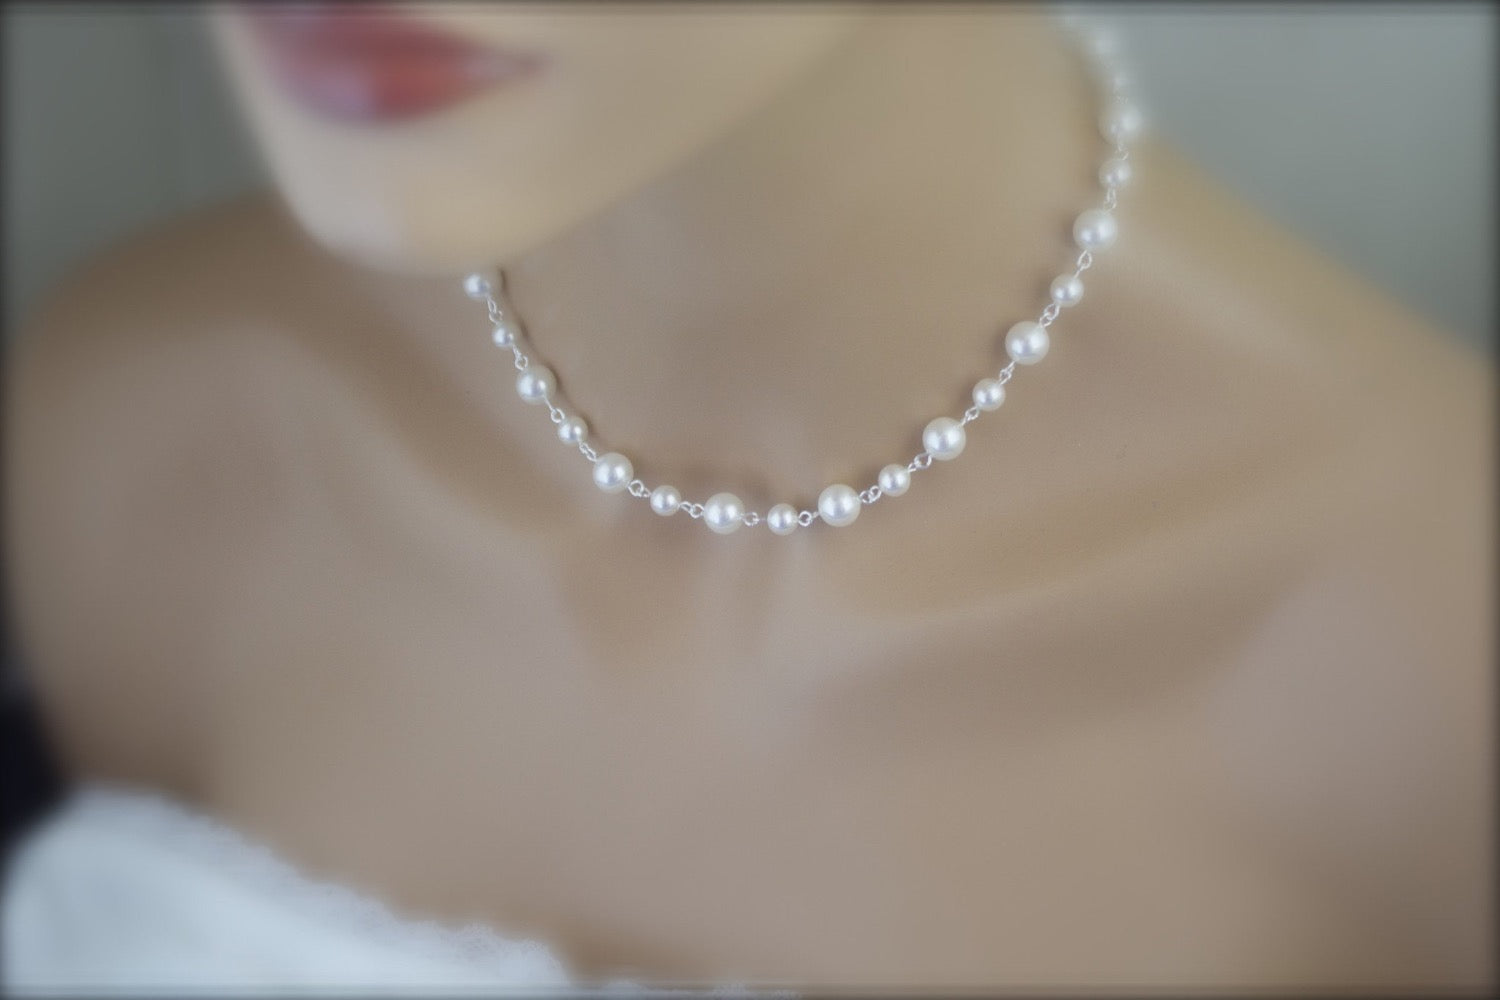 Wedding pearl necklace bridal jewelry Canada shop online - Clairesbridal - 3